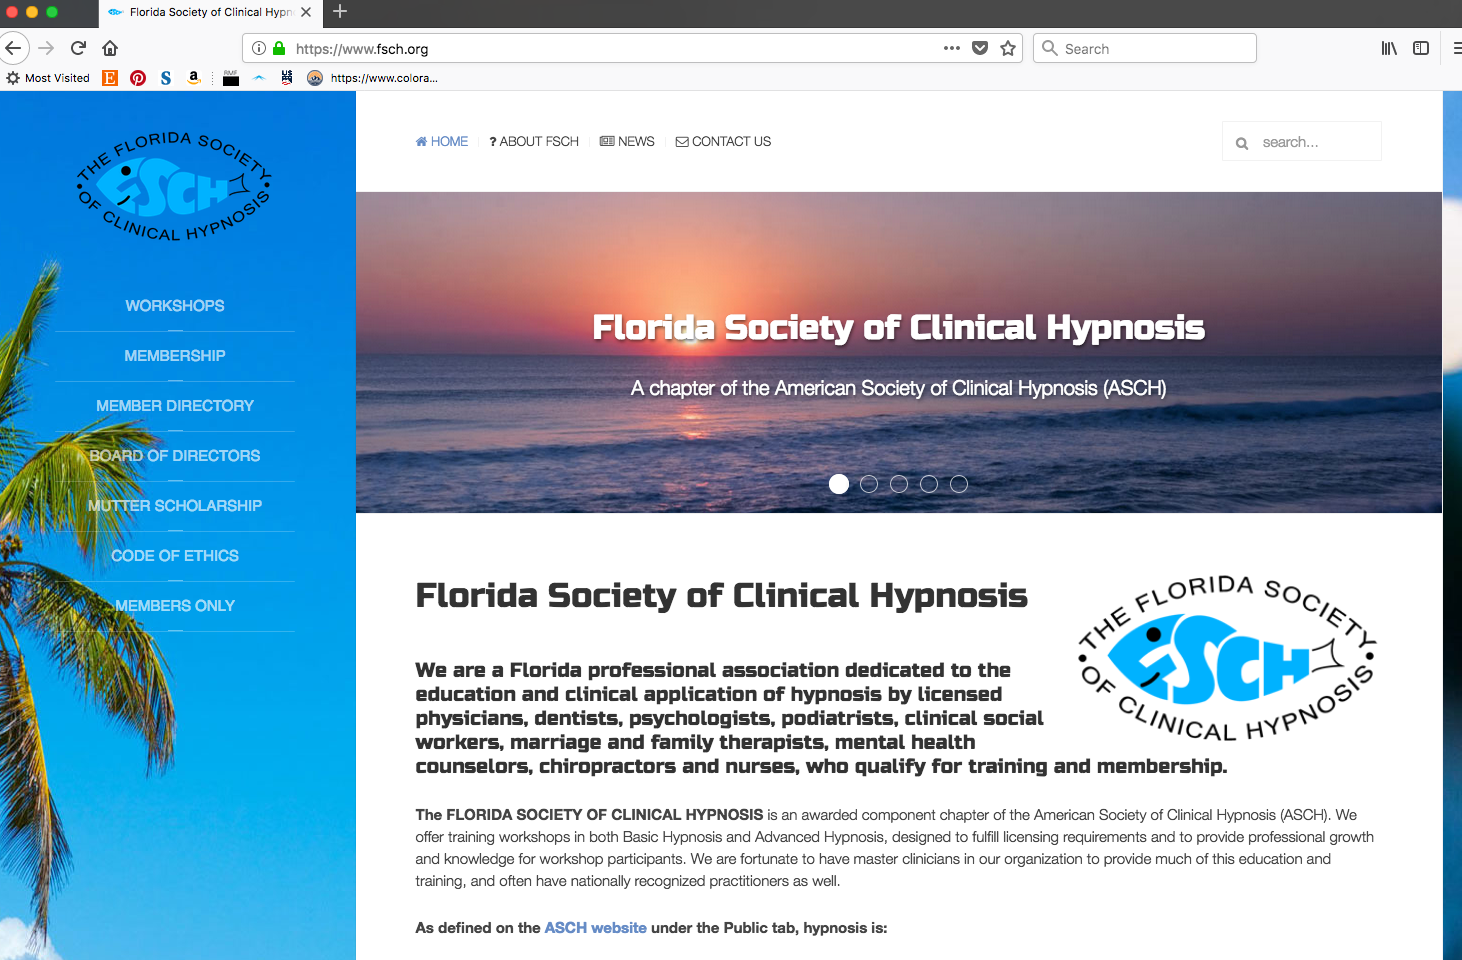 Florida Society of Clinical Hypnosis